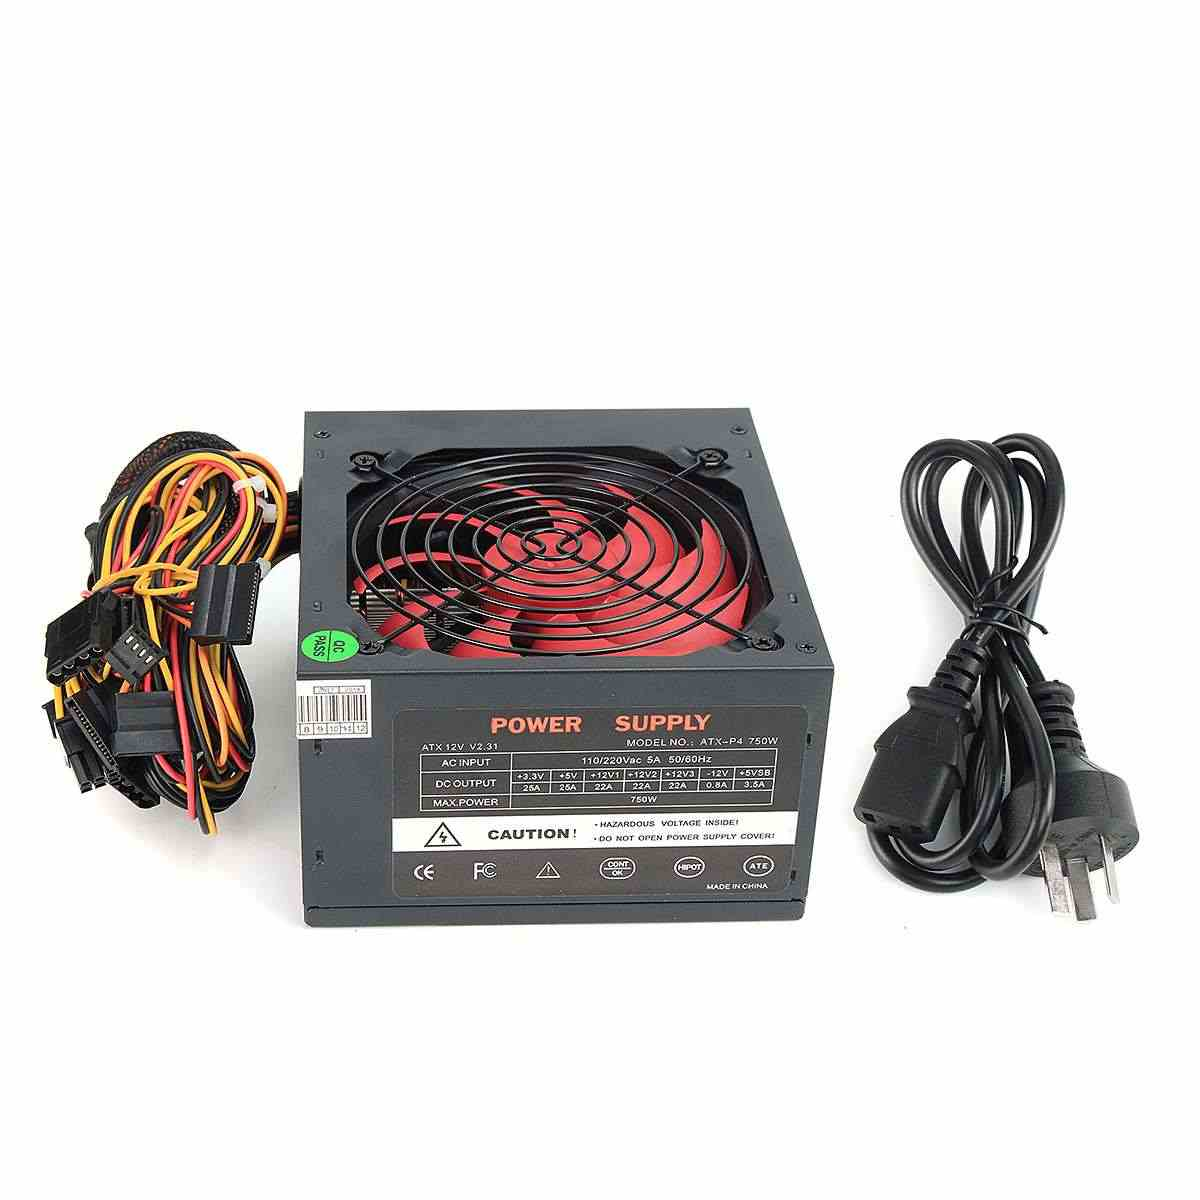 750 W PSU ATX 12 V Game PC Power Supply 24Pin/PCi/SATA/ATX 700 Walt 12 CM Fan Baru Power Supply Komputer untuk BTC